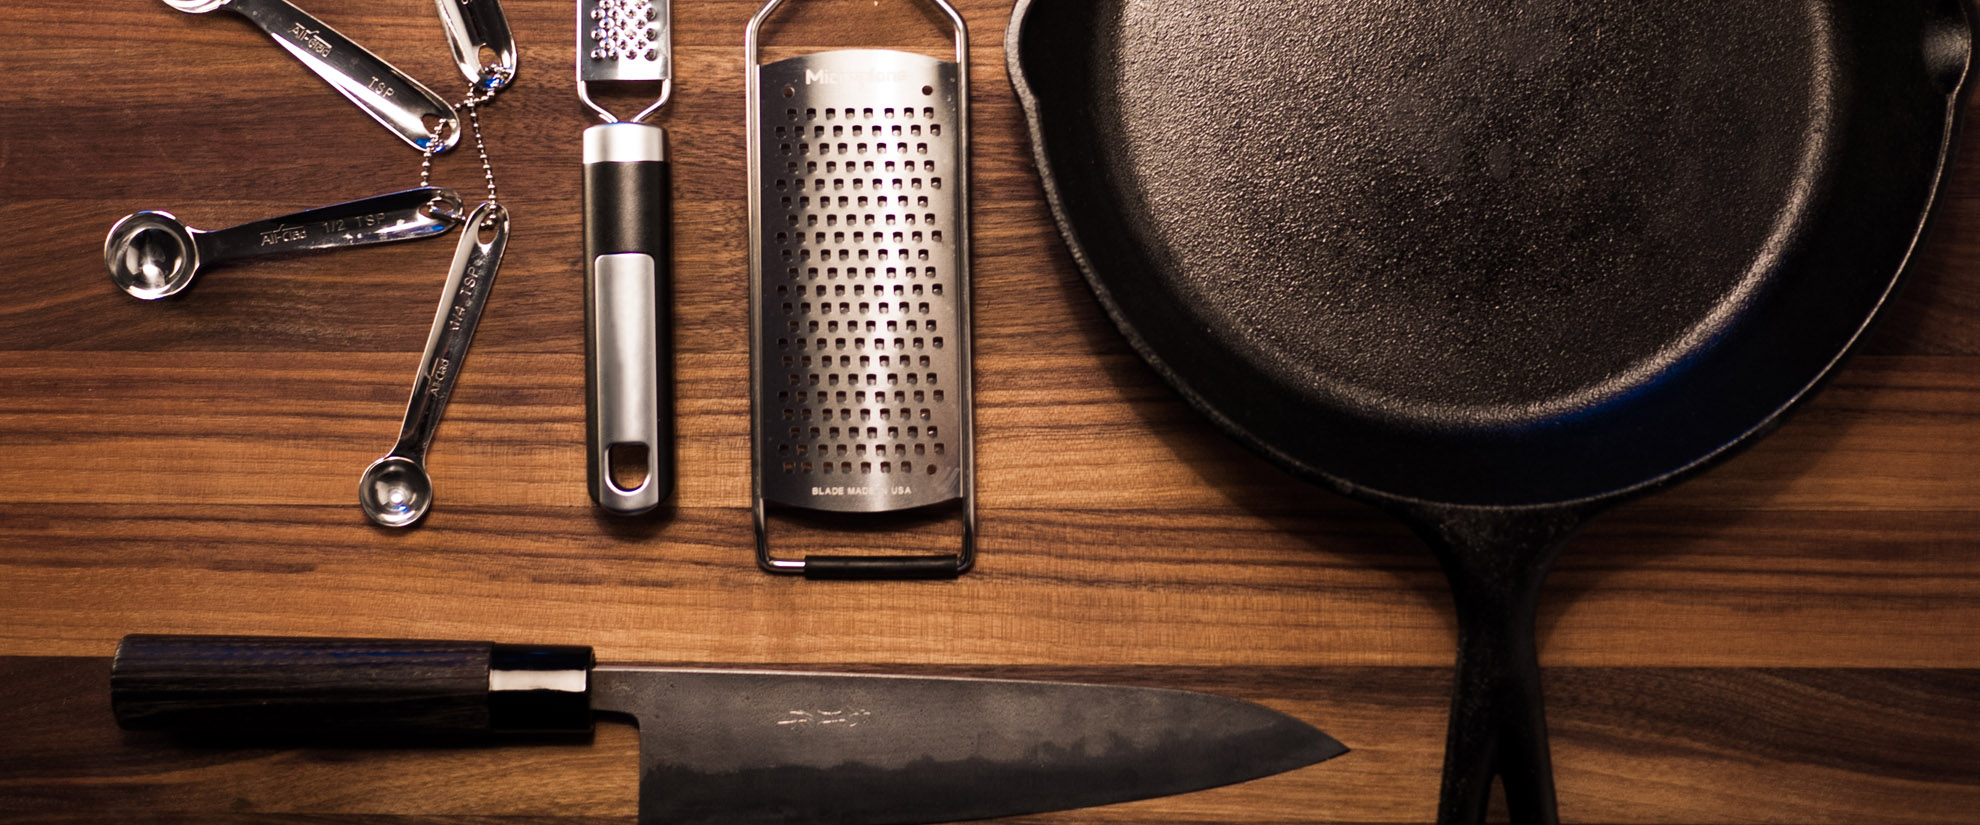 5 Essential Kitchen Tools For Every Home Chef